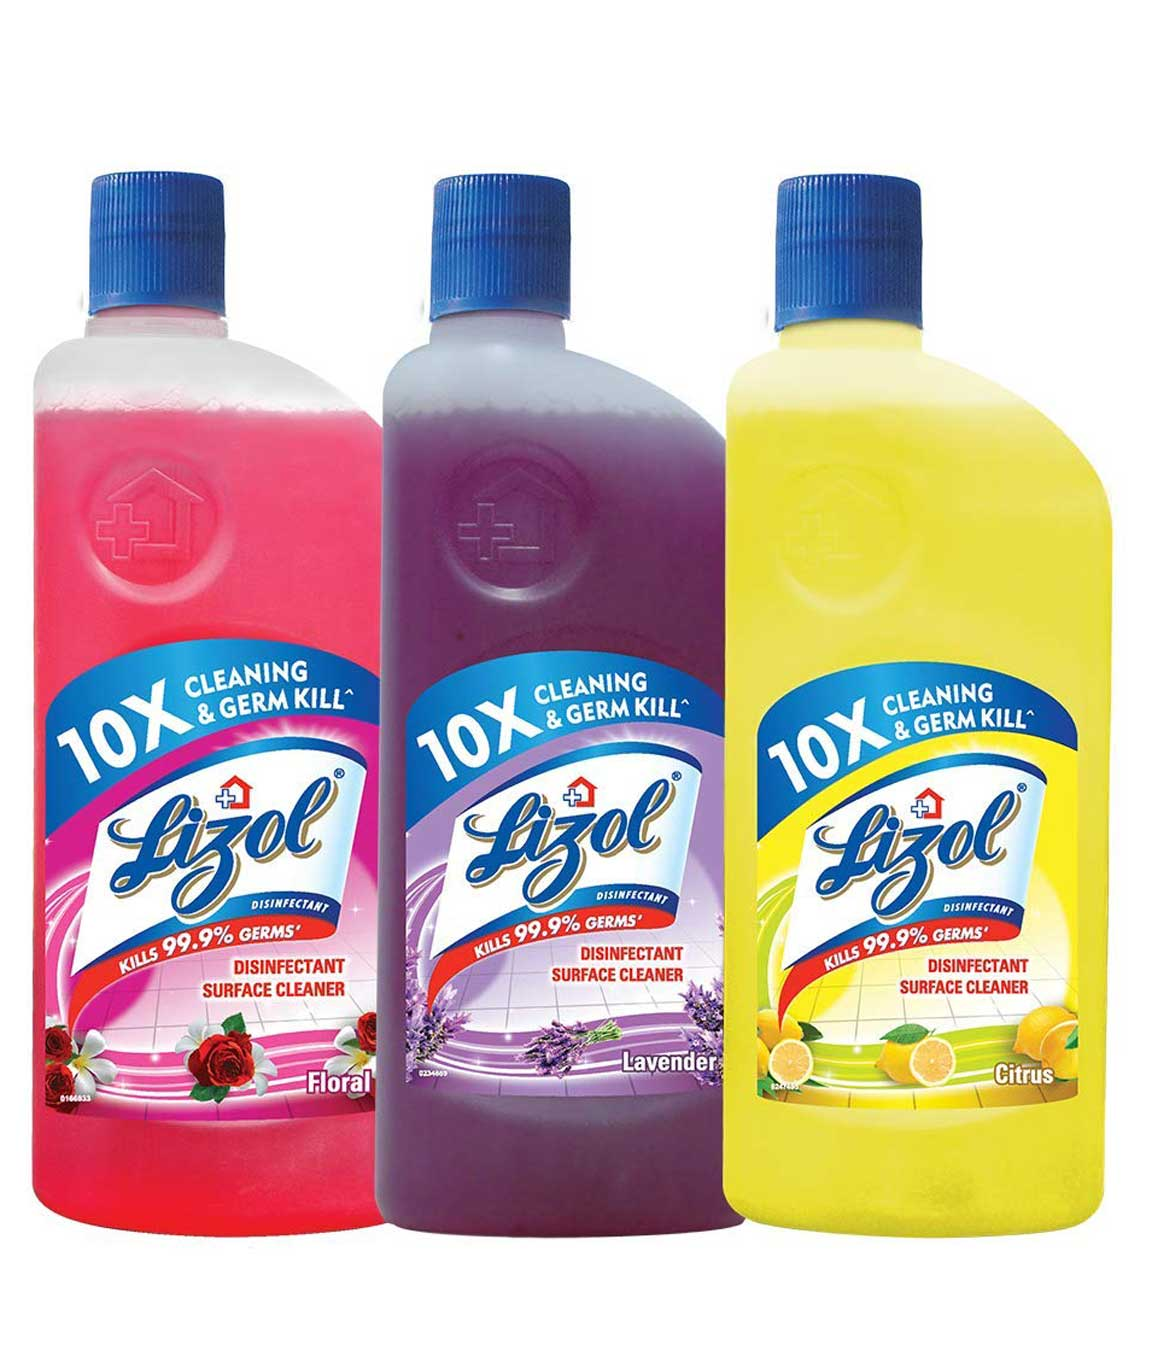 Lizol Disinfectant Surface & Floor Cleaner Combo [Citrus - 500 ml + Floral - 500 ml and Lavender - 500 ml]